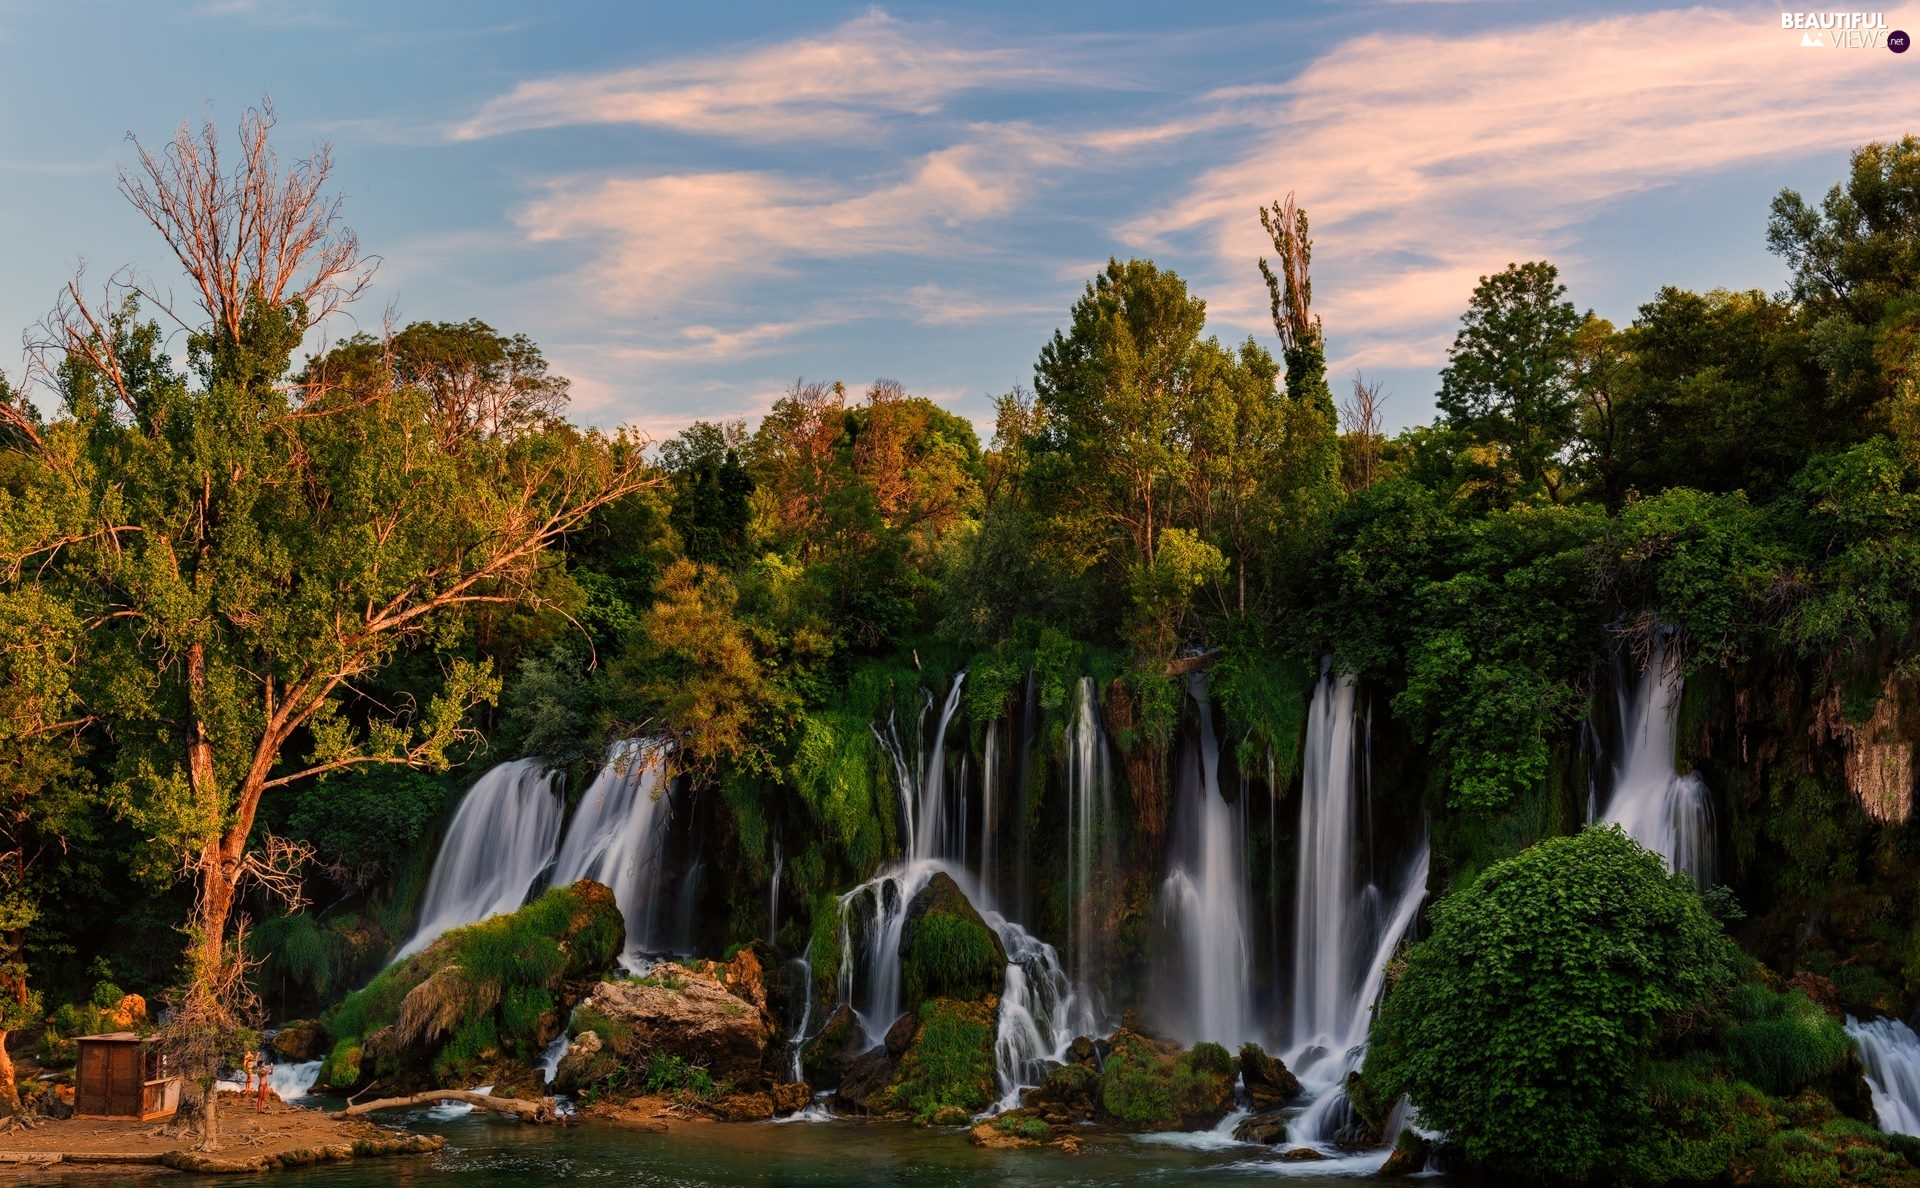 viewes, River, rocks, trees, Kravica Waterfalls, VEGETATION, Bosnia and Herzegovina